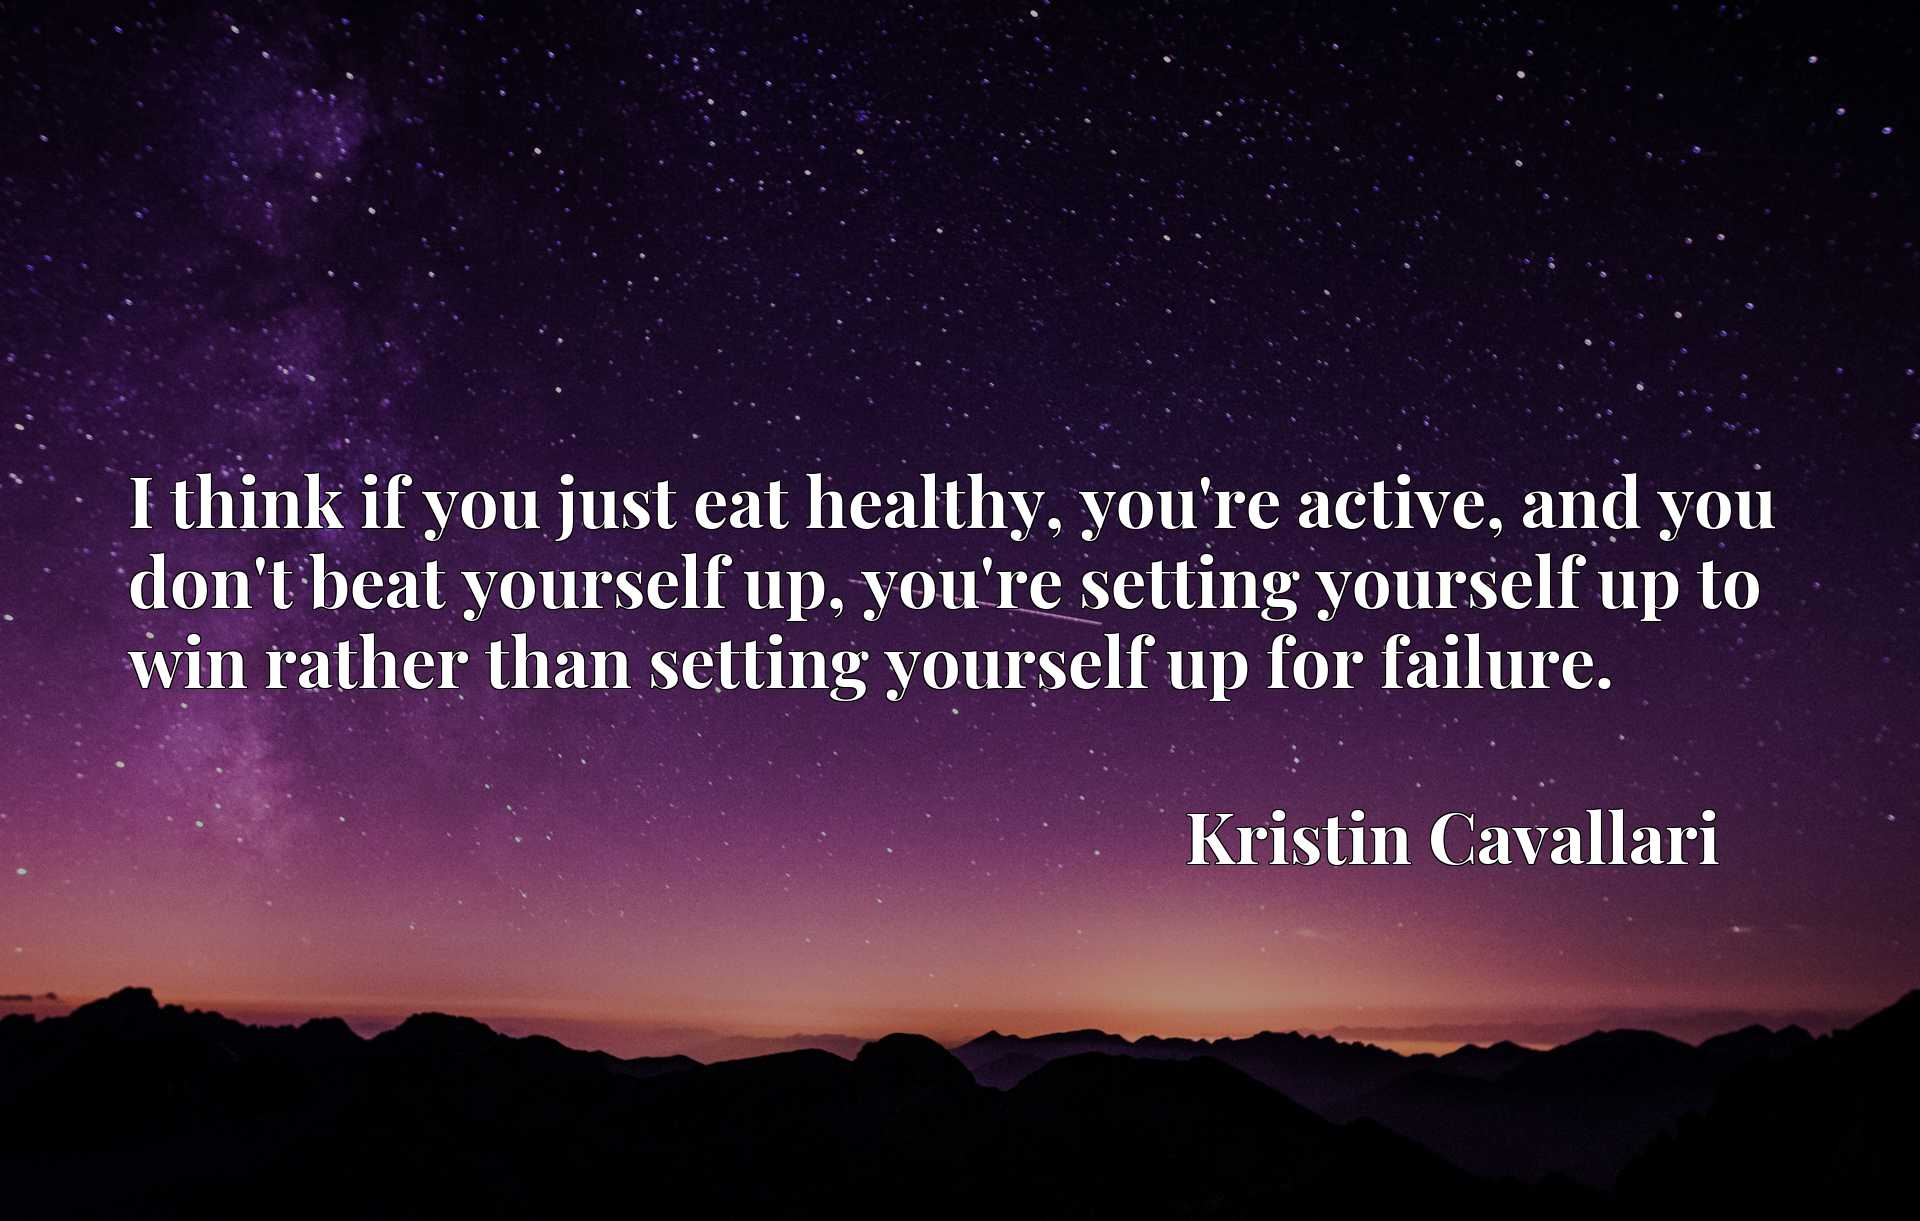 I think if you just eat healthy, you're active, and you don't beat yourself up, you're setting yourself up to win rather than setting yourself up for failure.